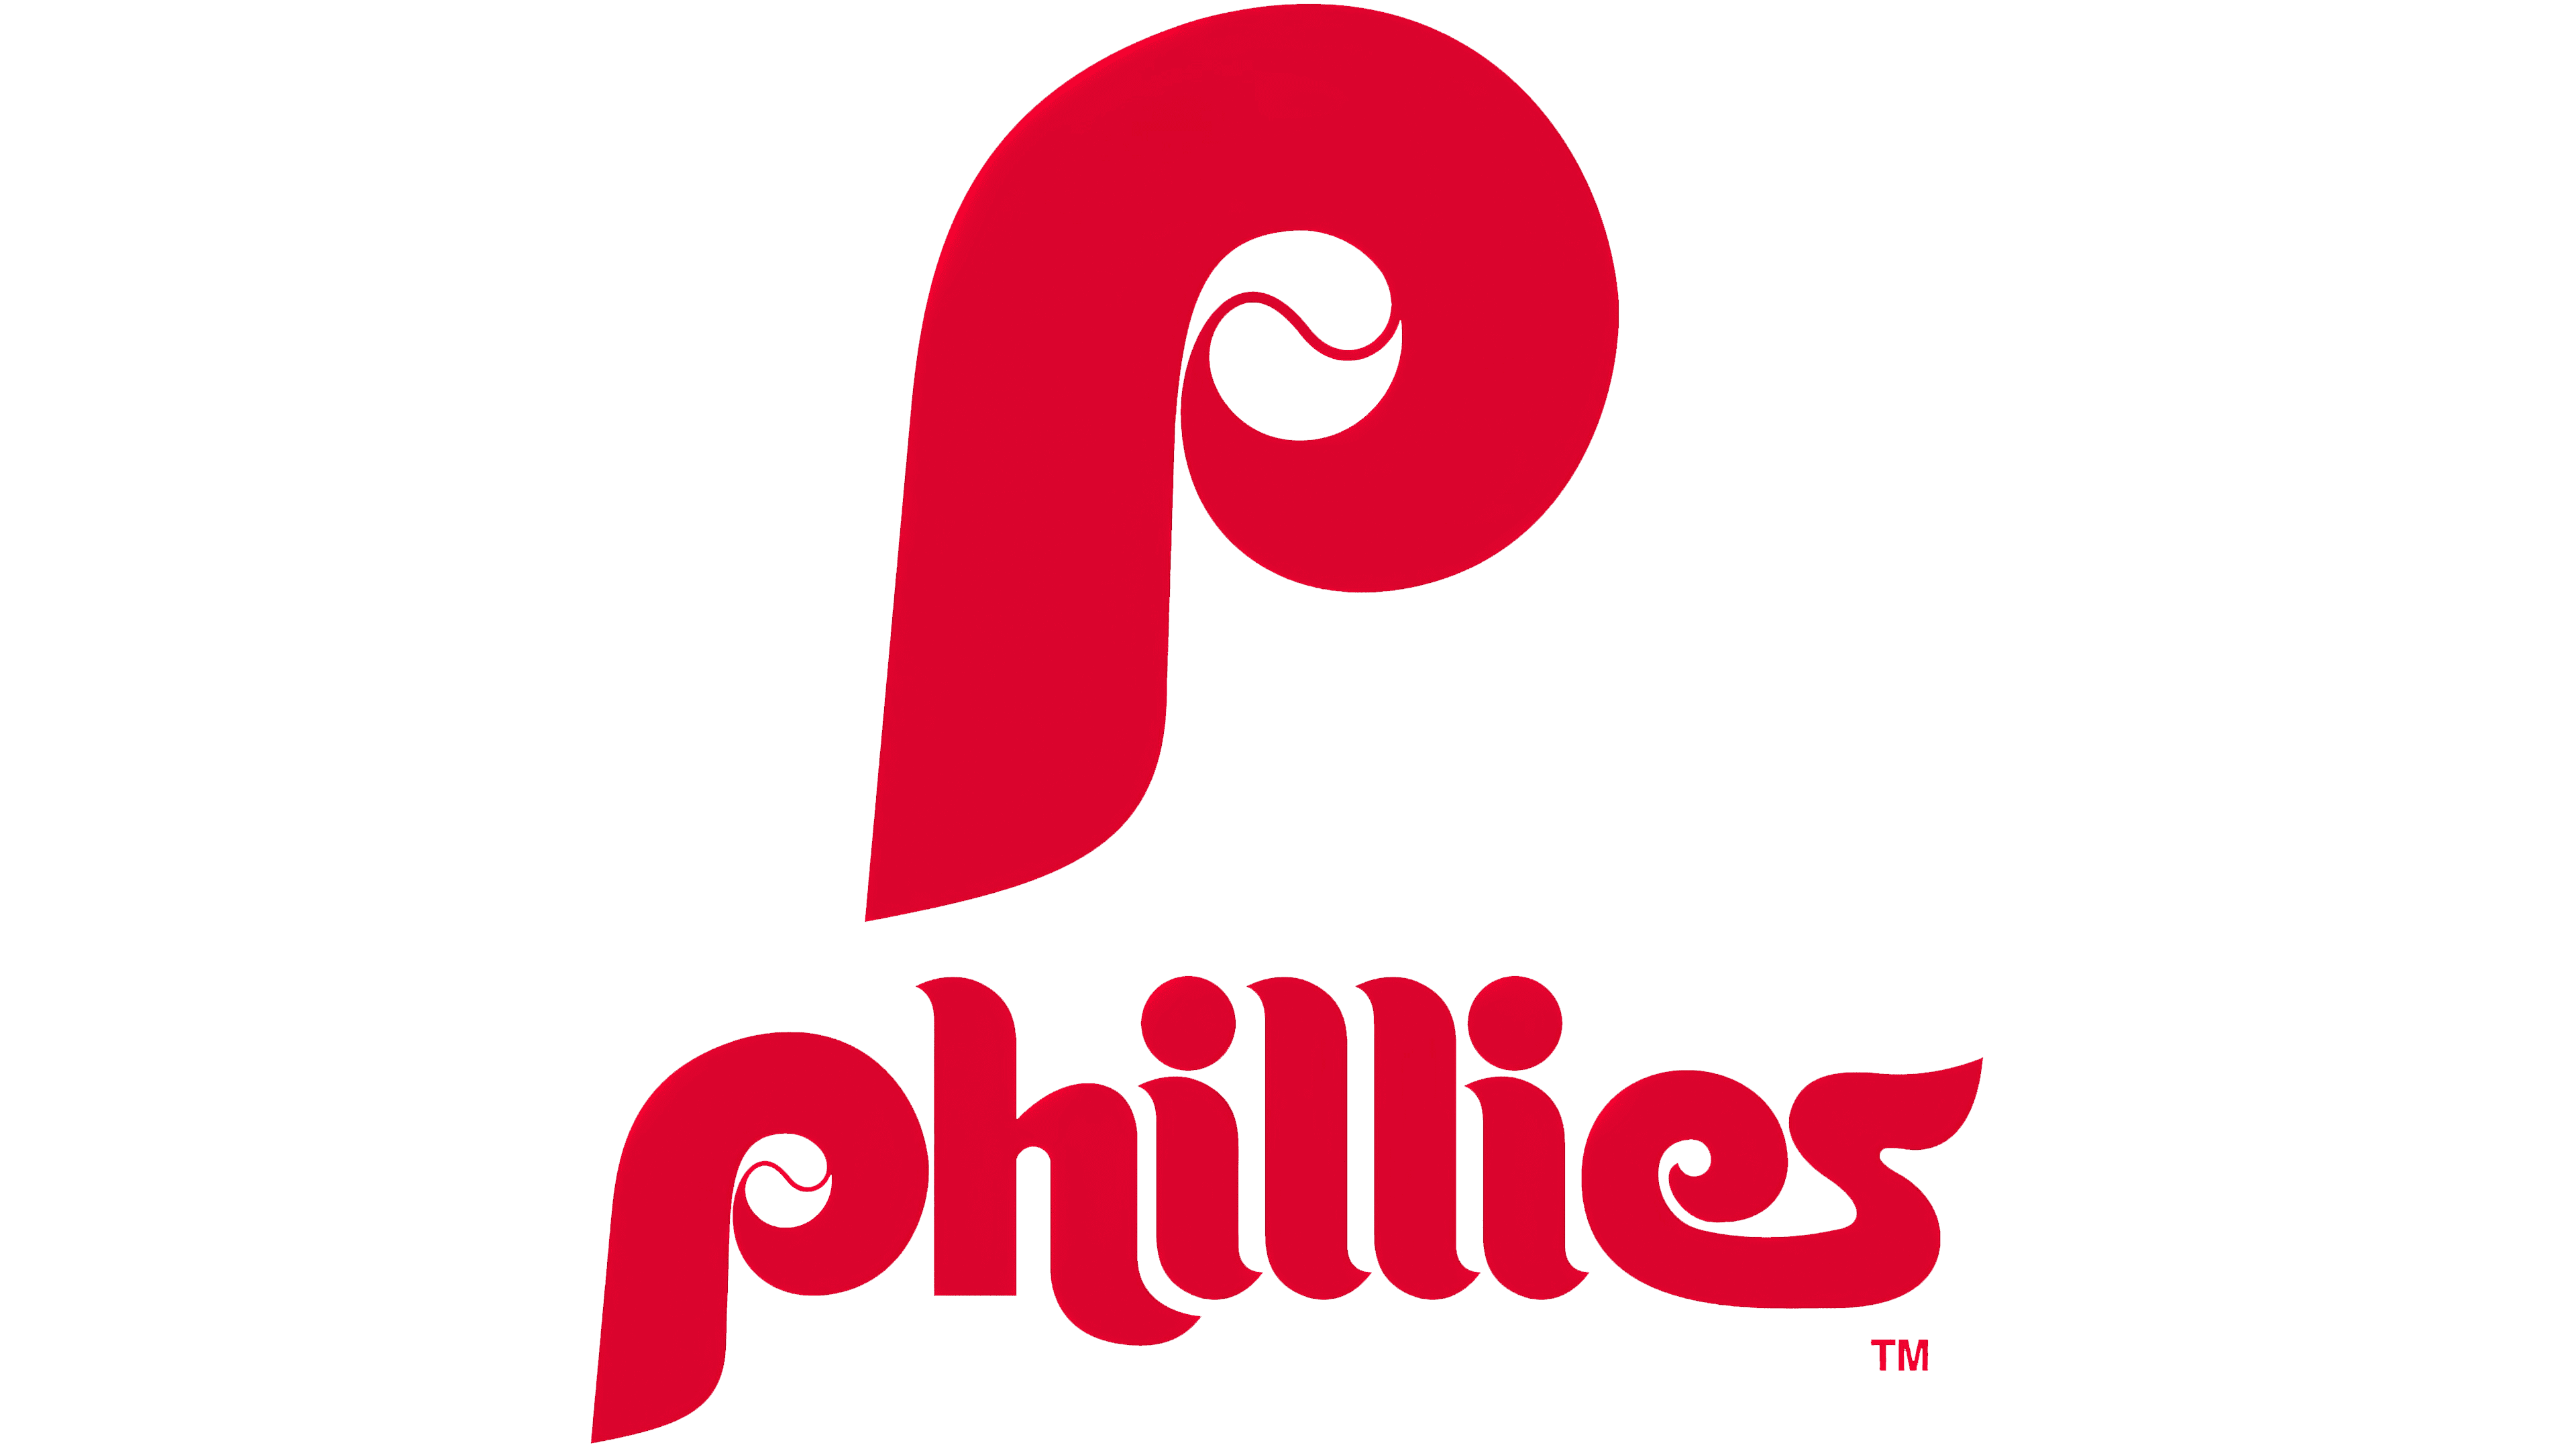 Philadelphia Phillies Logo History The Most Famous Brands And Company Logos In The World